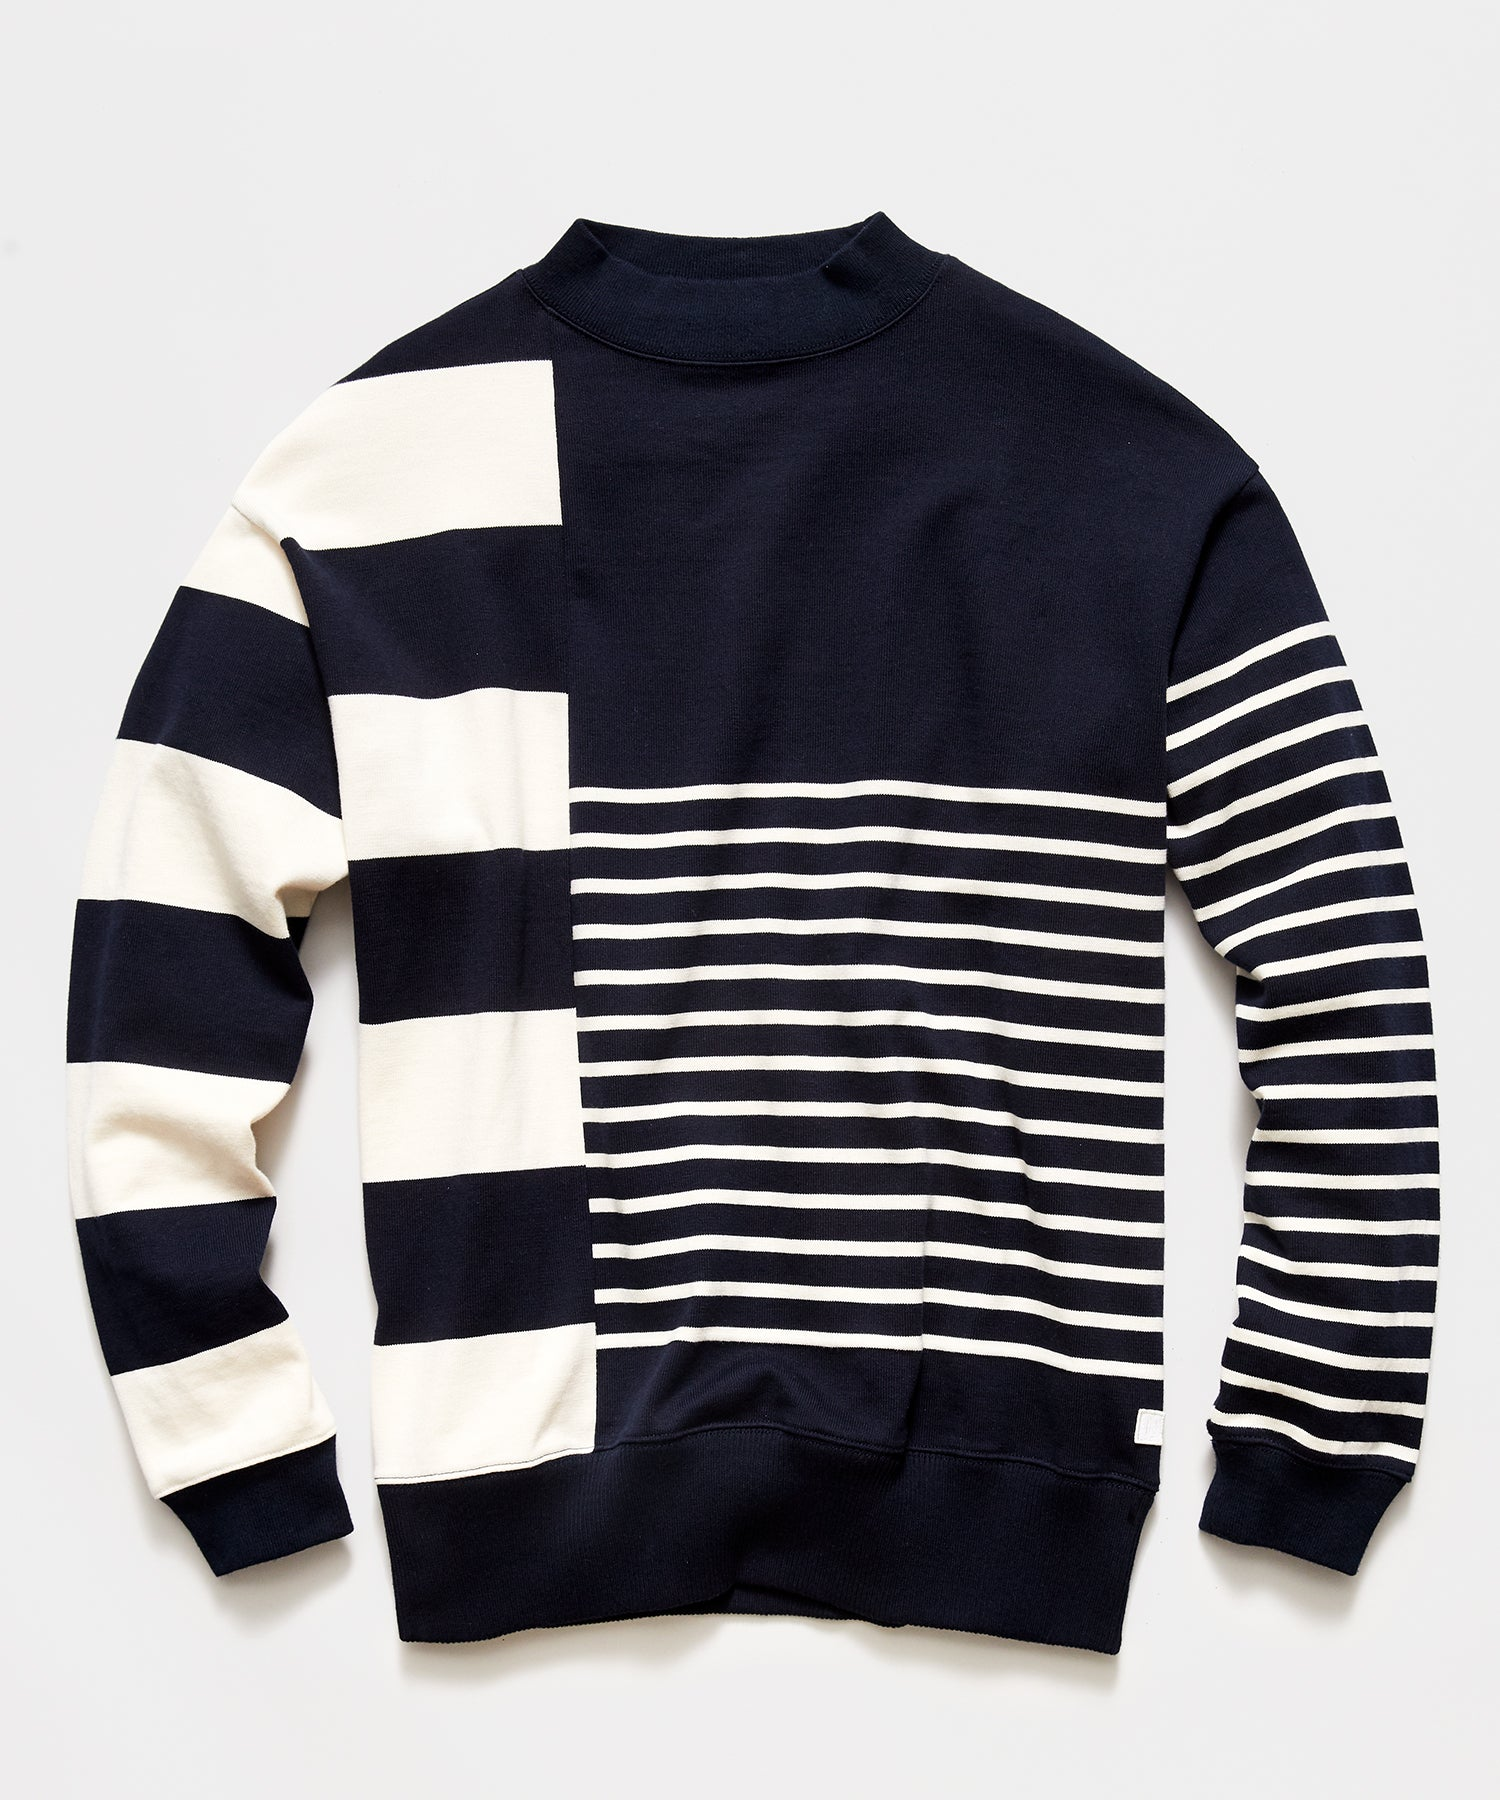 Nanamica Colorblocked Sweater in Navy